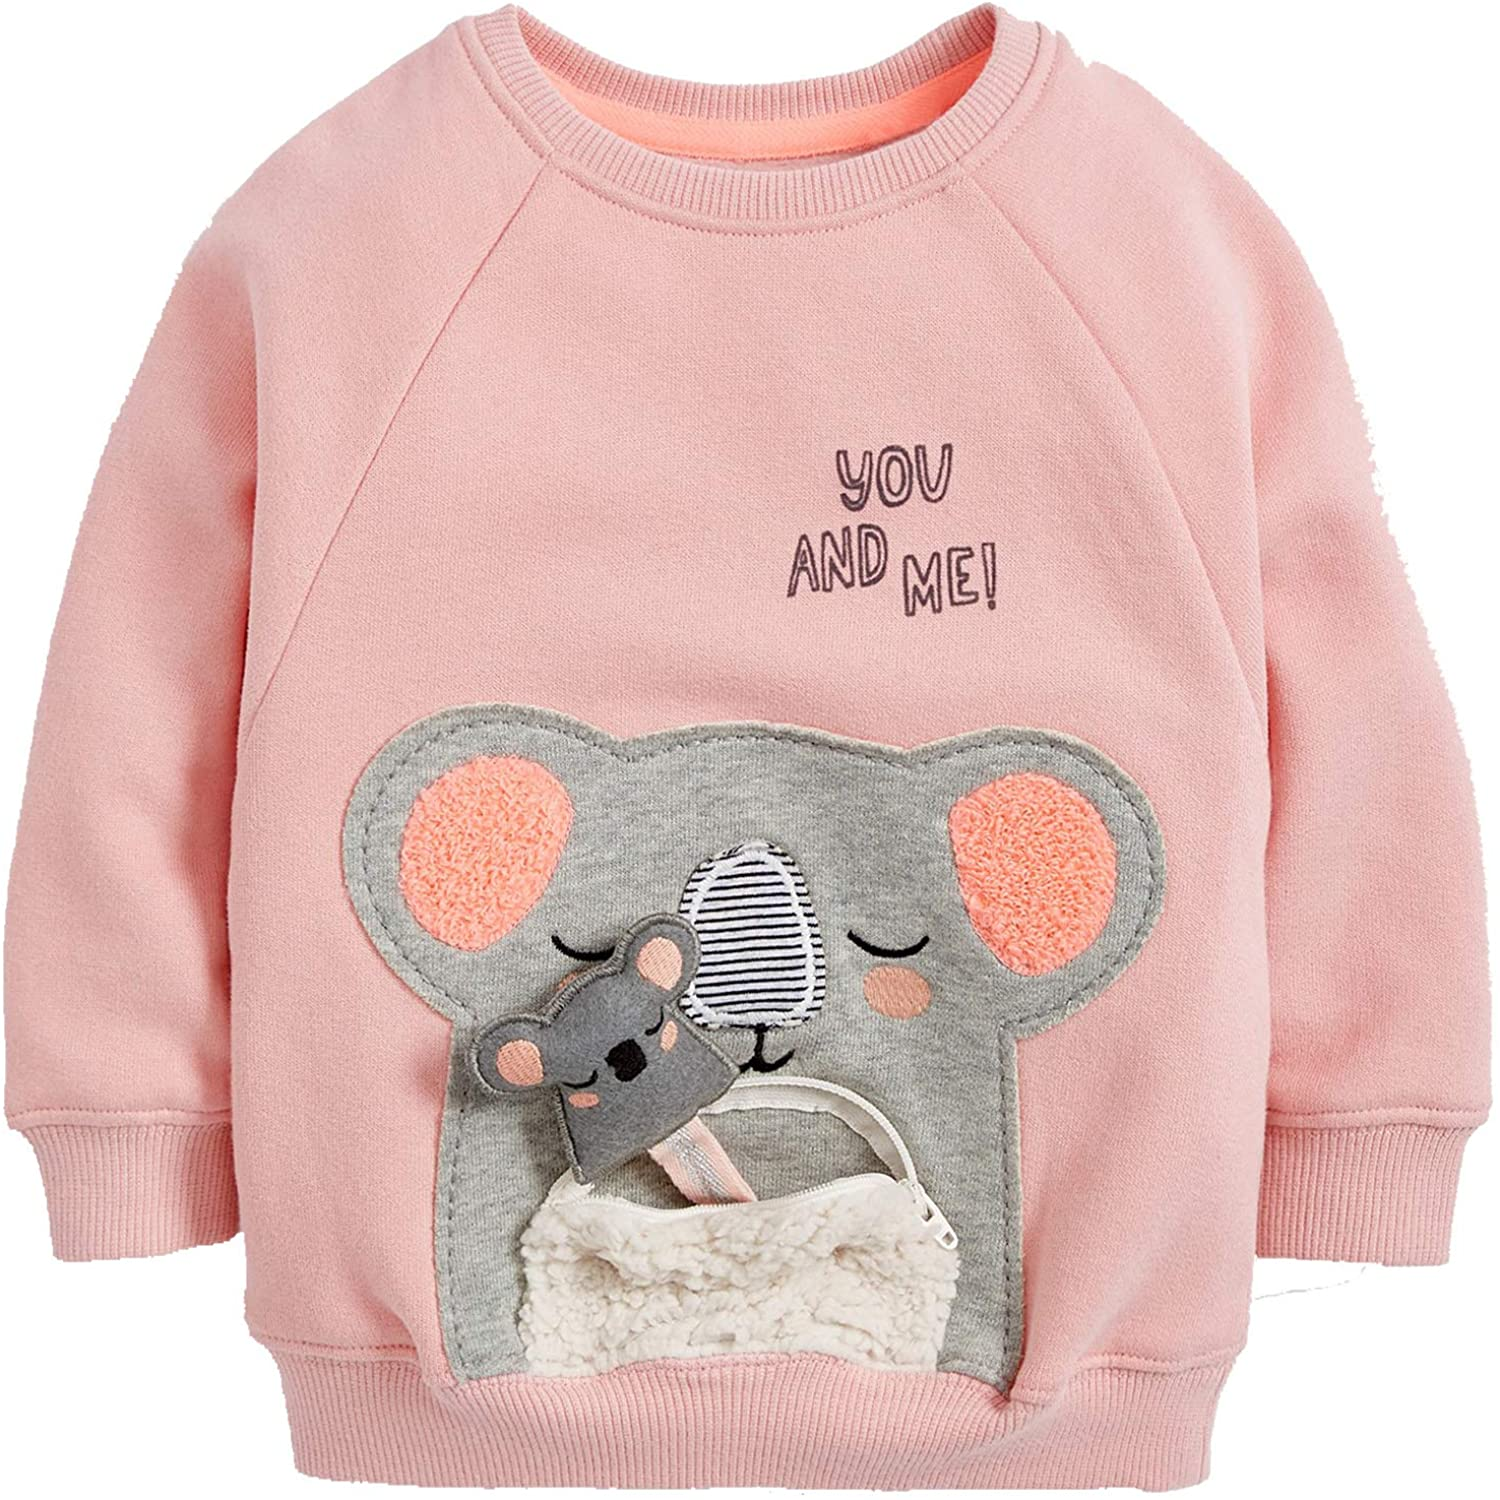 Toddler Baby Little Girl's Clothes Sweatshirt,Cotton Long Sleeve Crew Neck Cute Top Outfit